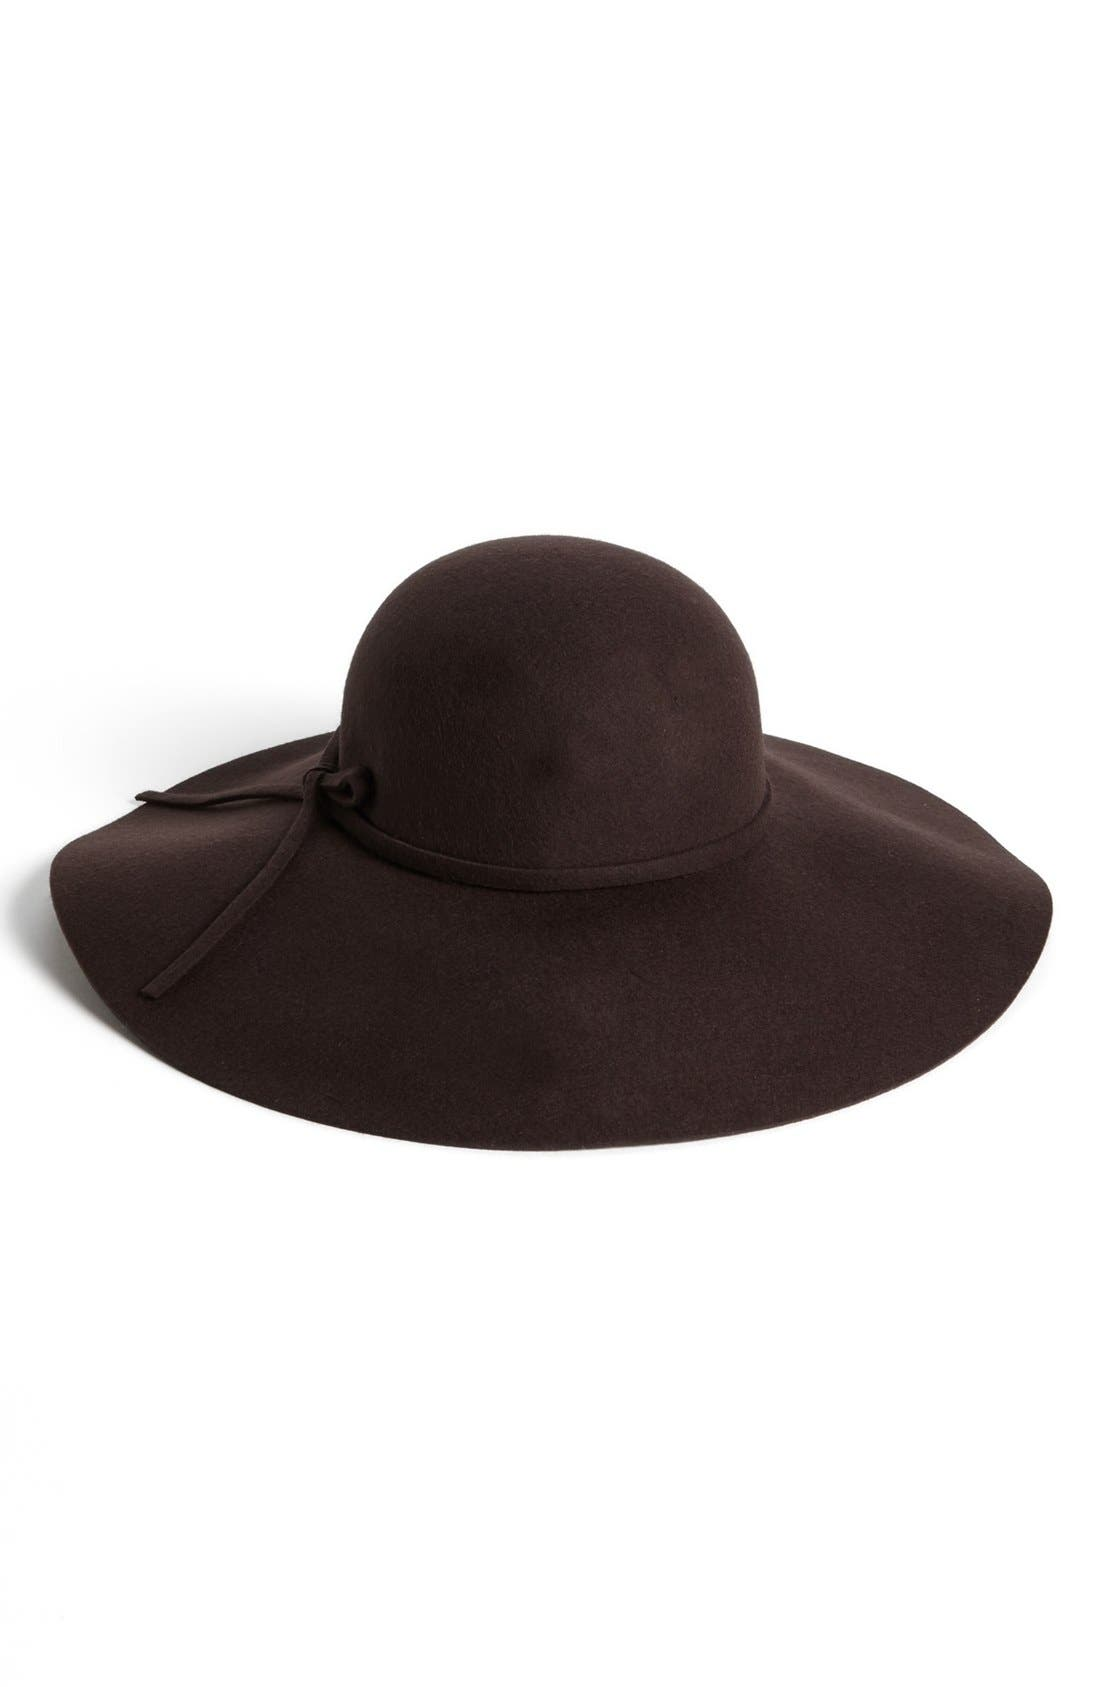 Alternate Image 1 Selected - David & Young Floppy Felt Hat (Juniors) (Online Only)